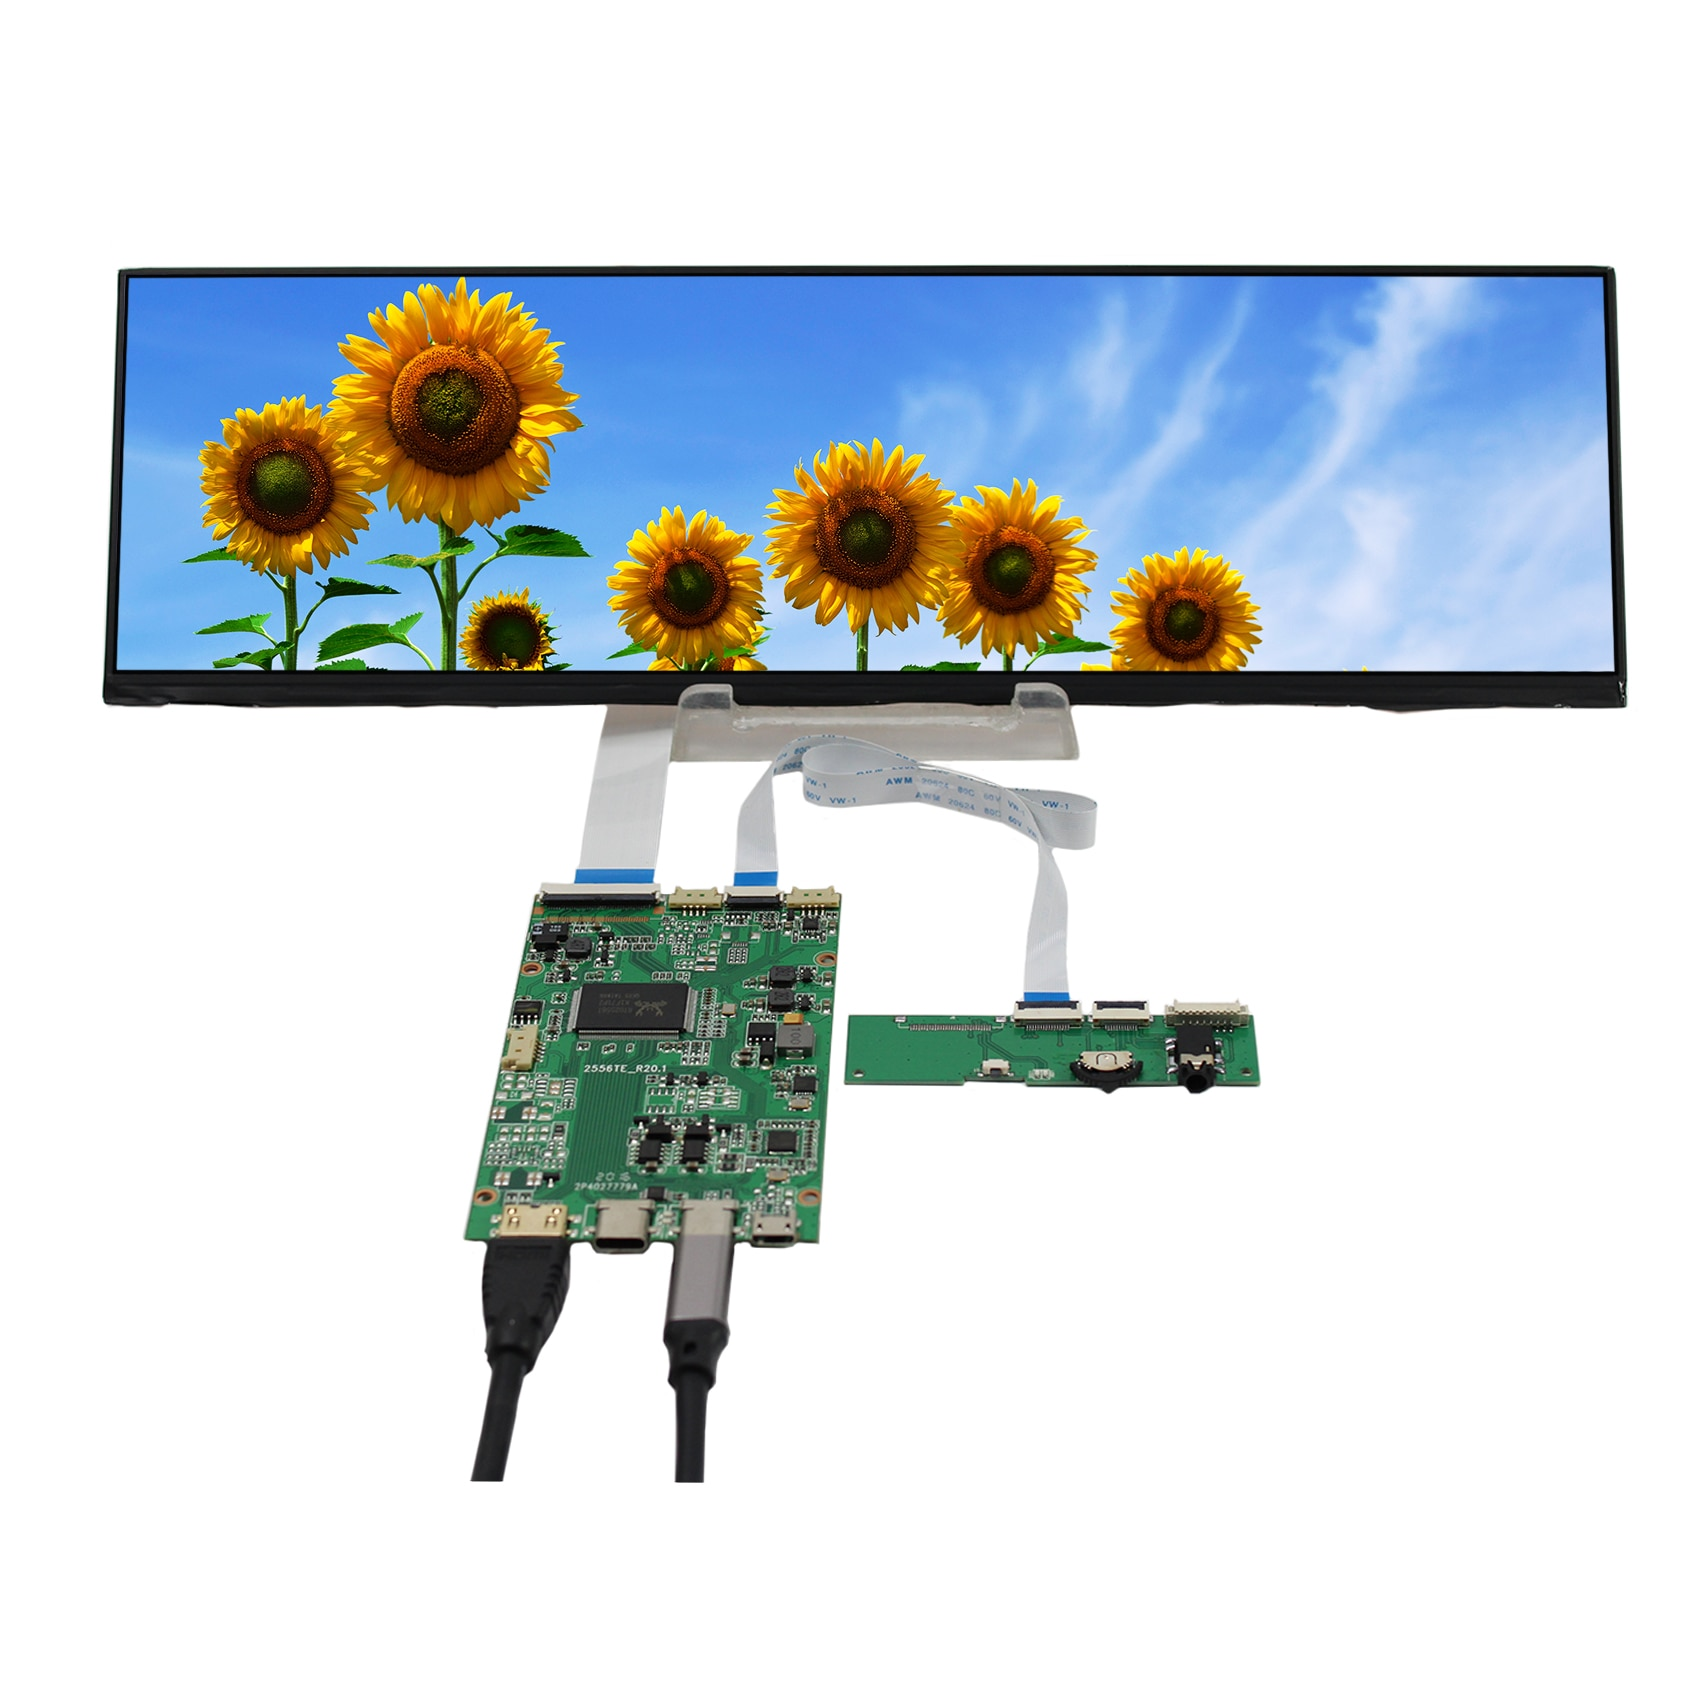 EDP 12.6inch NV126B5M-N41 1920X515 IPS LCD Screen work with HD  MI Board for mall /car/ navigation/ shelves booking system